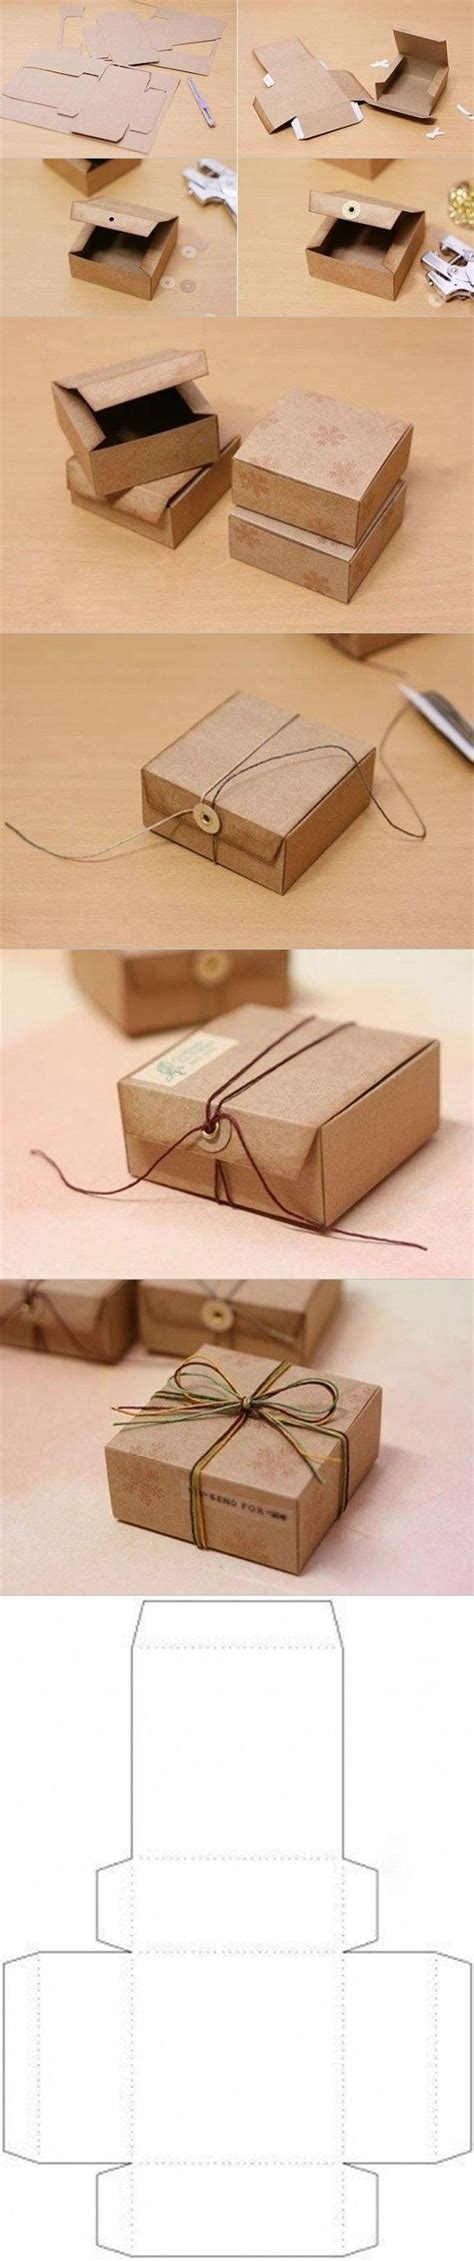 diy gift box from cardboard fab art diy